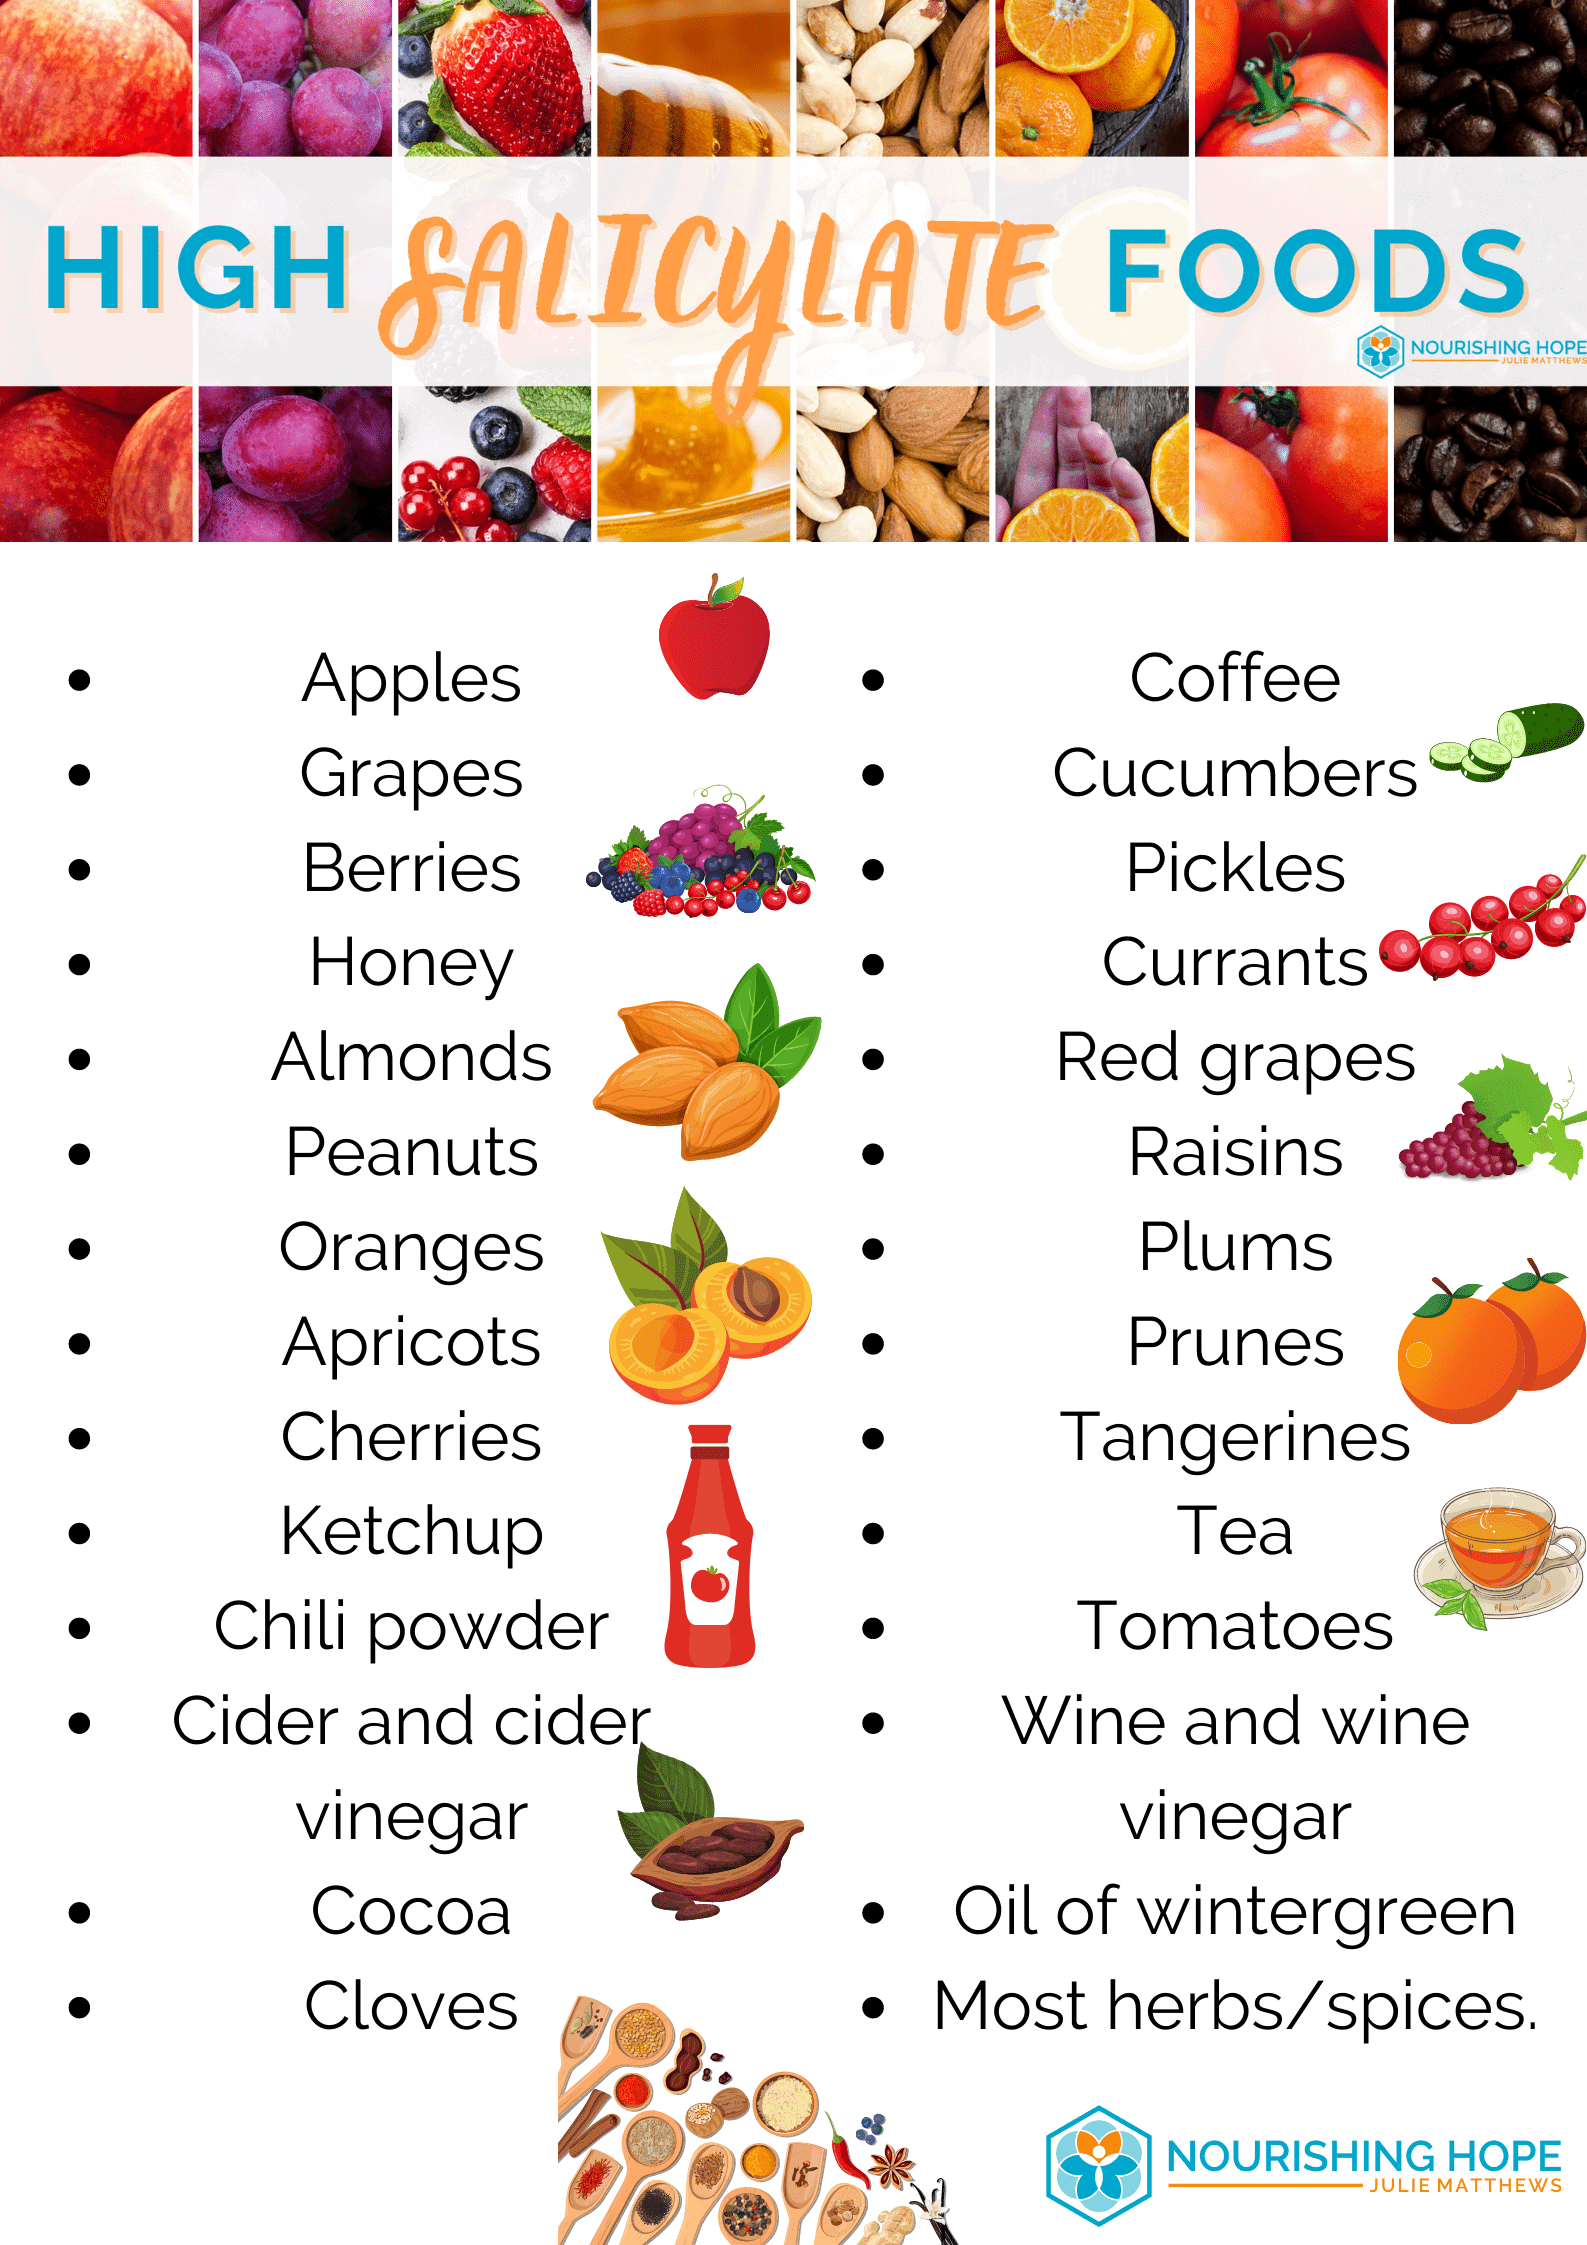 Apples Grapes Berries Honey Almonds Peanuts Oranges Apricots Cherries Ketchup Chili powder Cider and cider vinegar